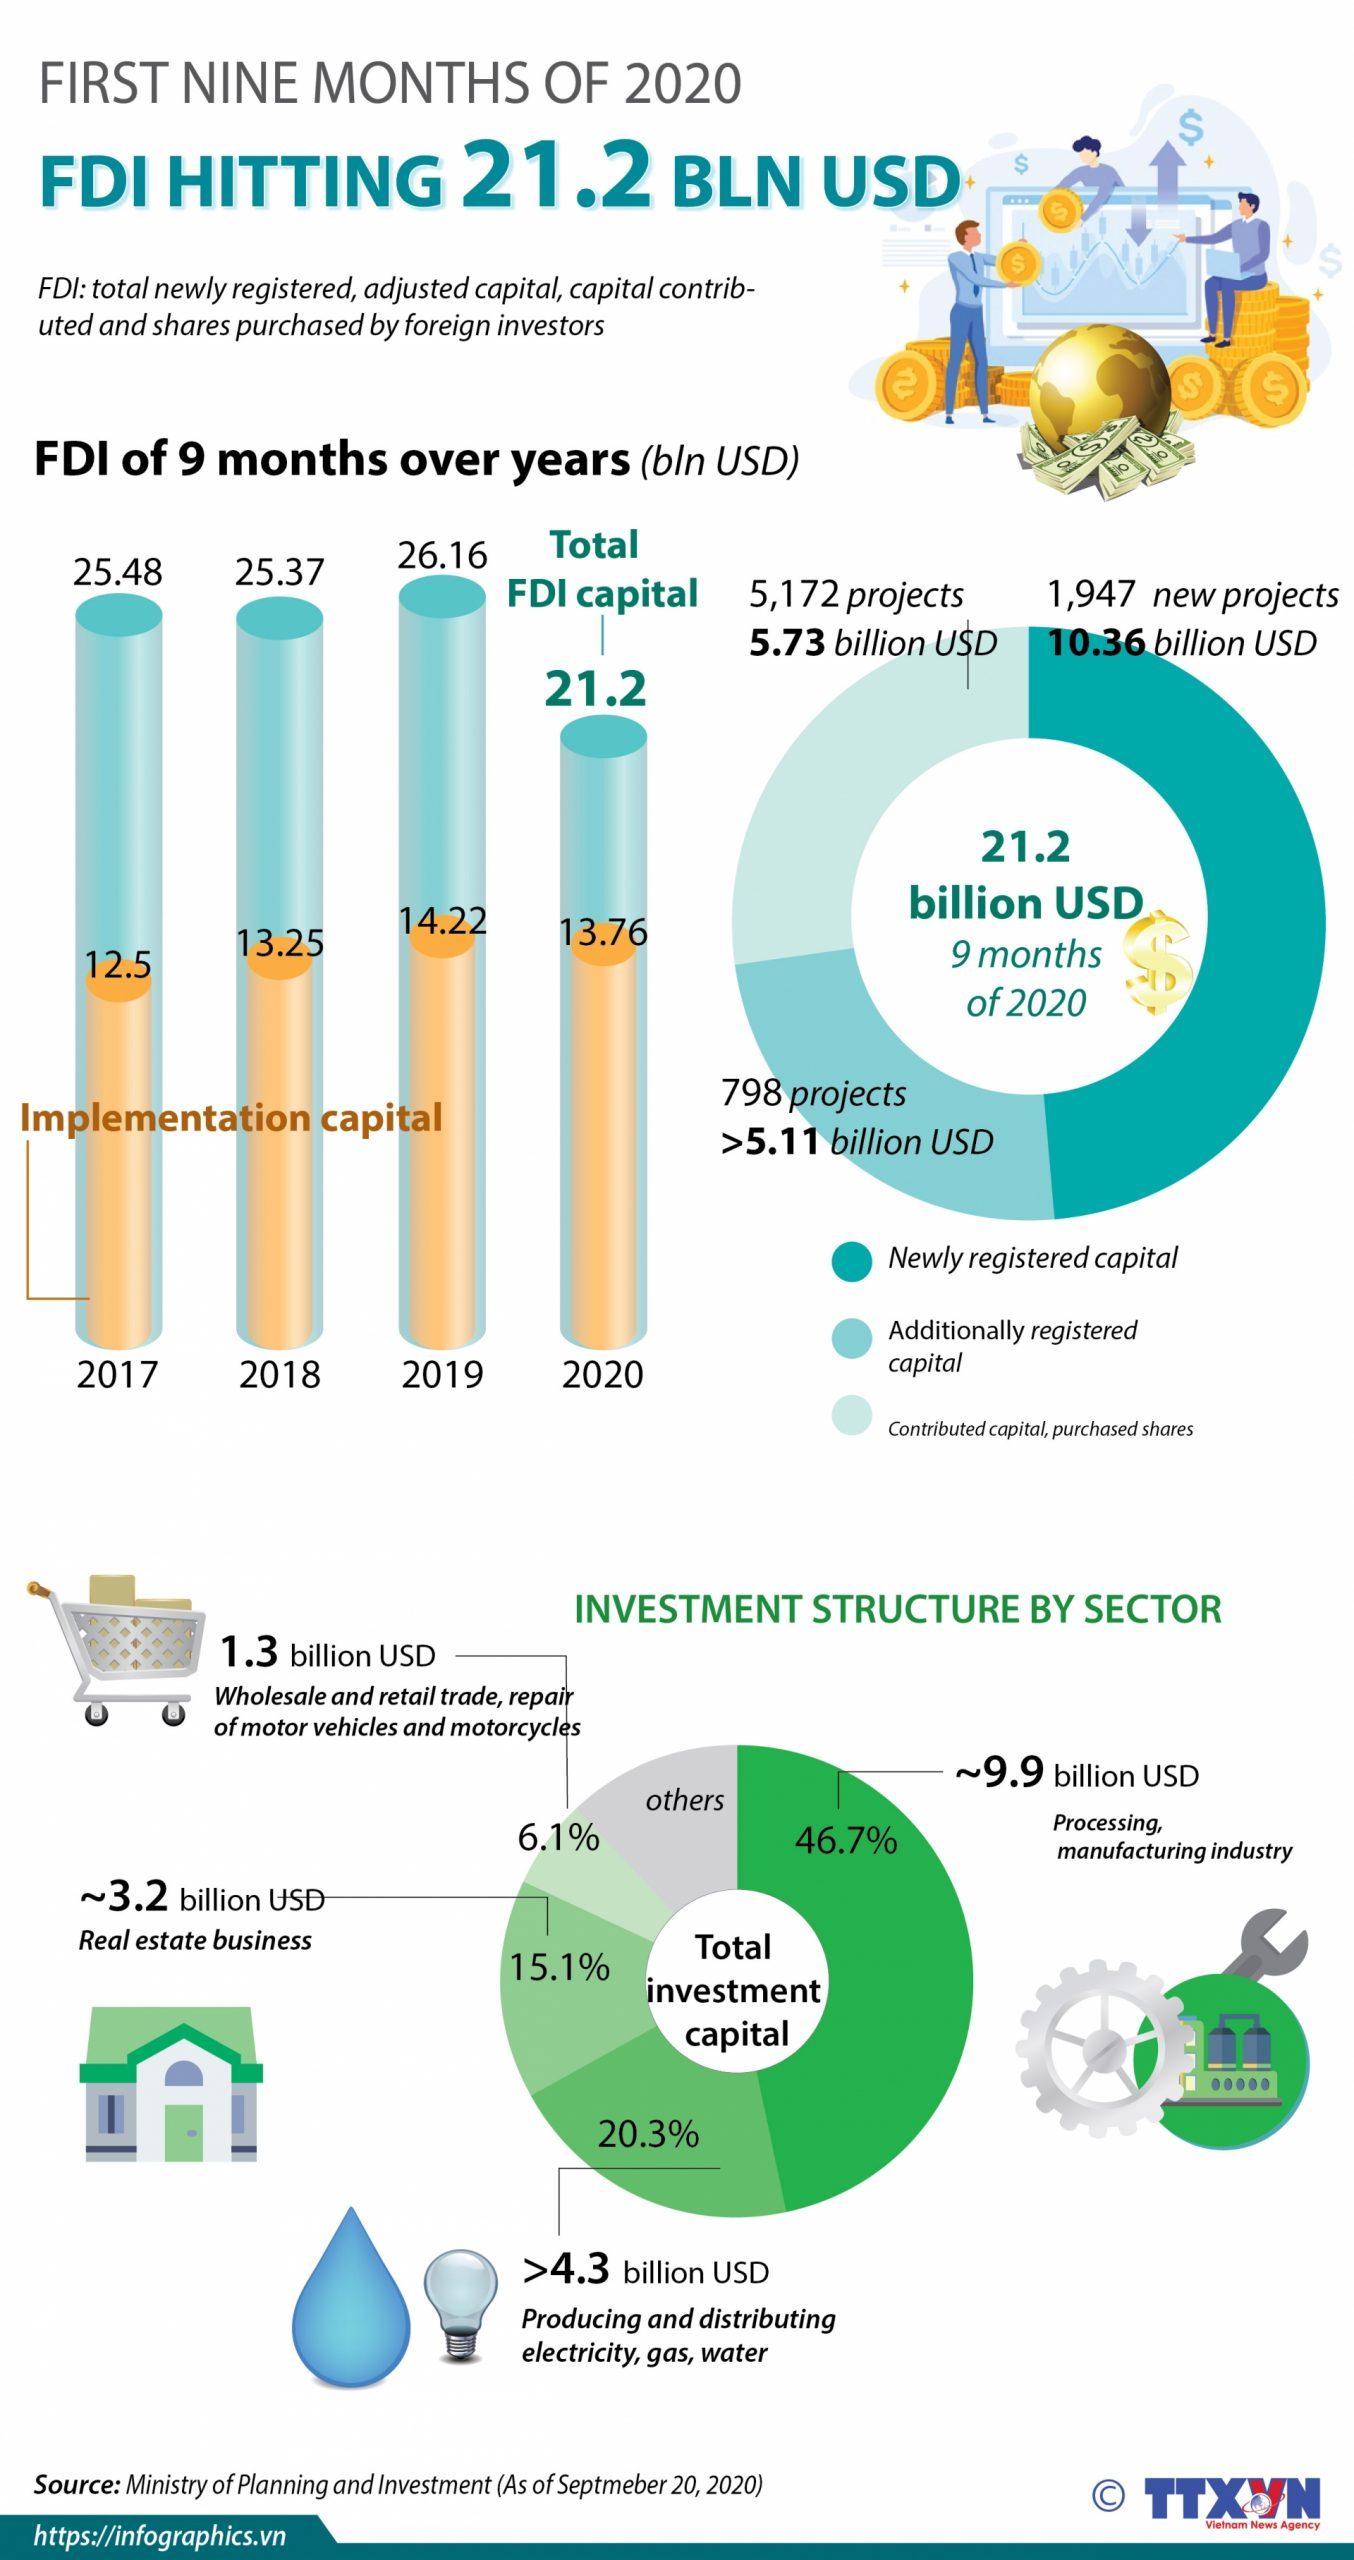 FDI reaching 21.2 billion USD in first nine months